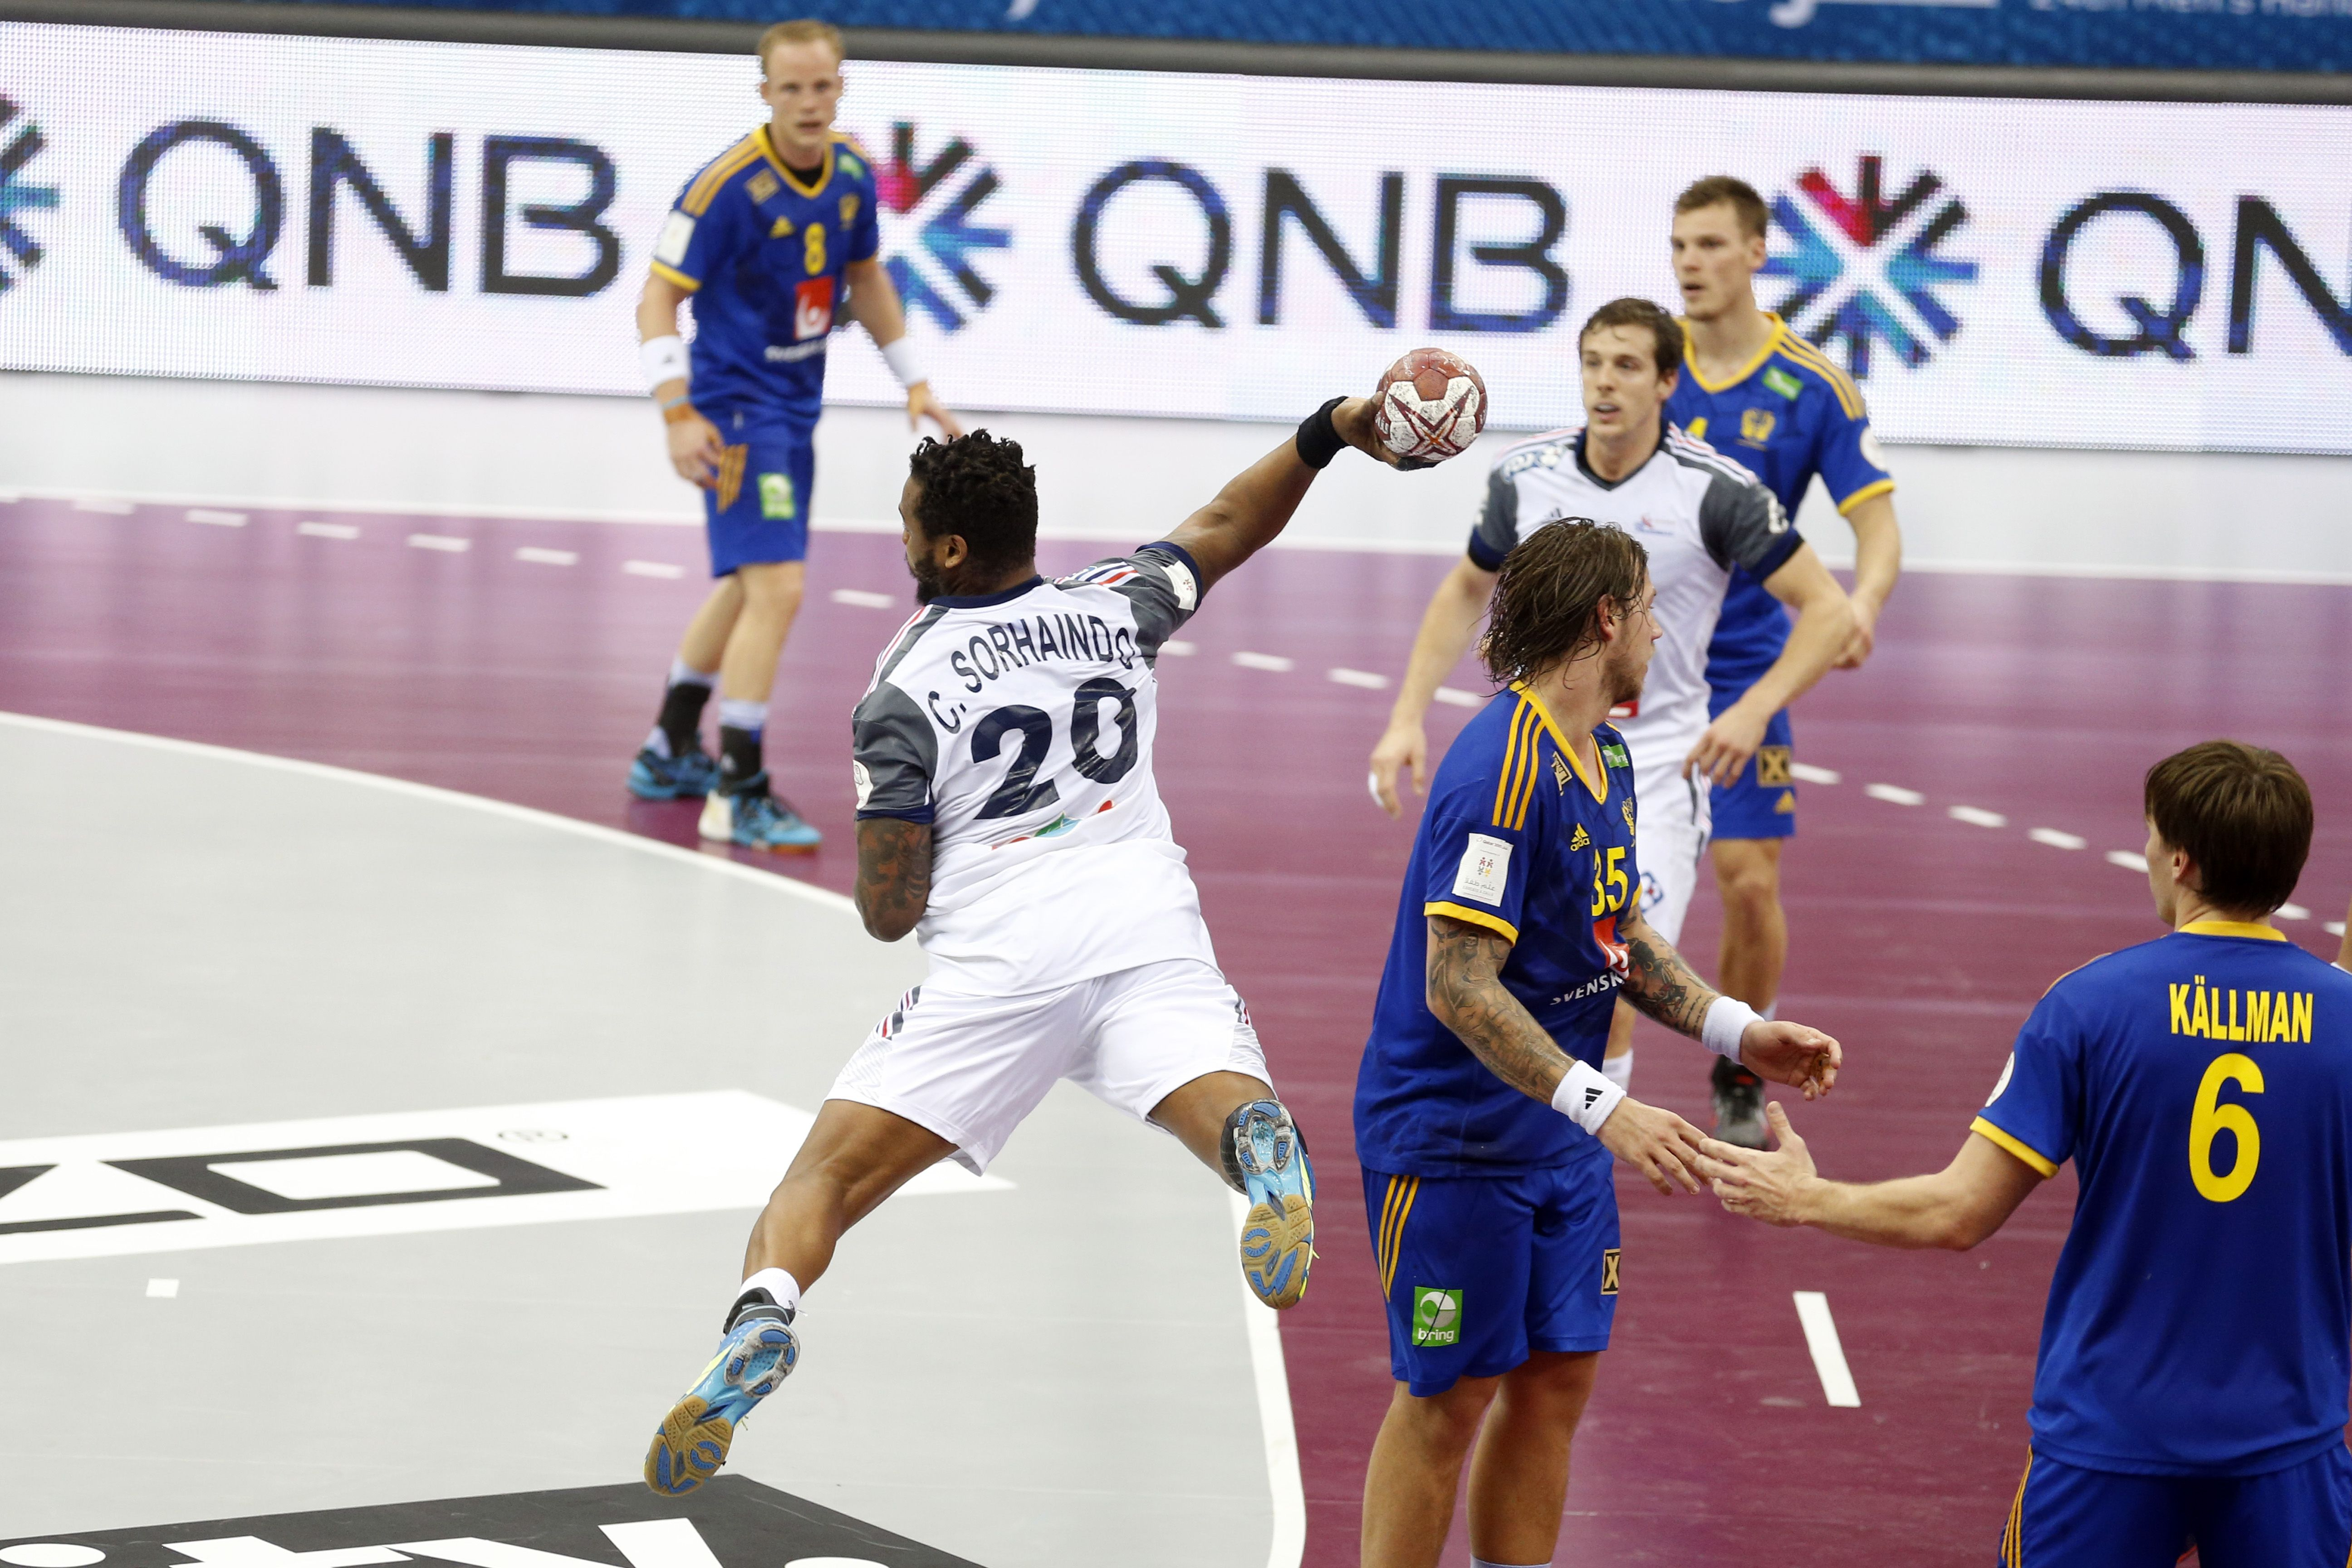 France against Sweden 24.01.2015 All matches are played on